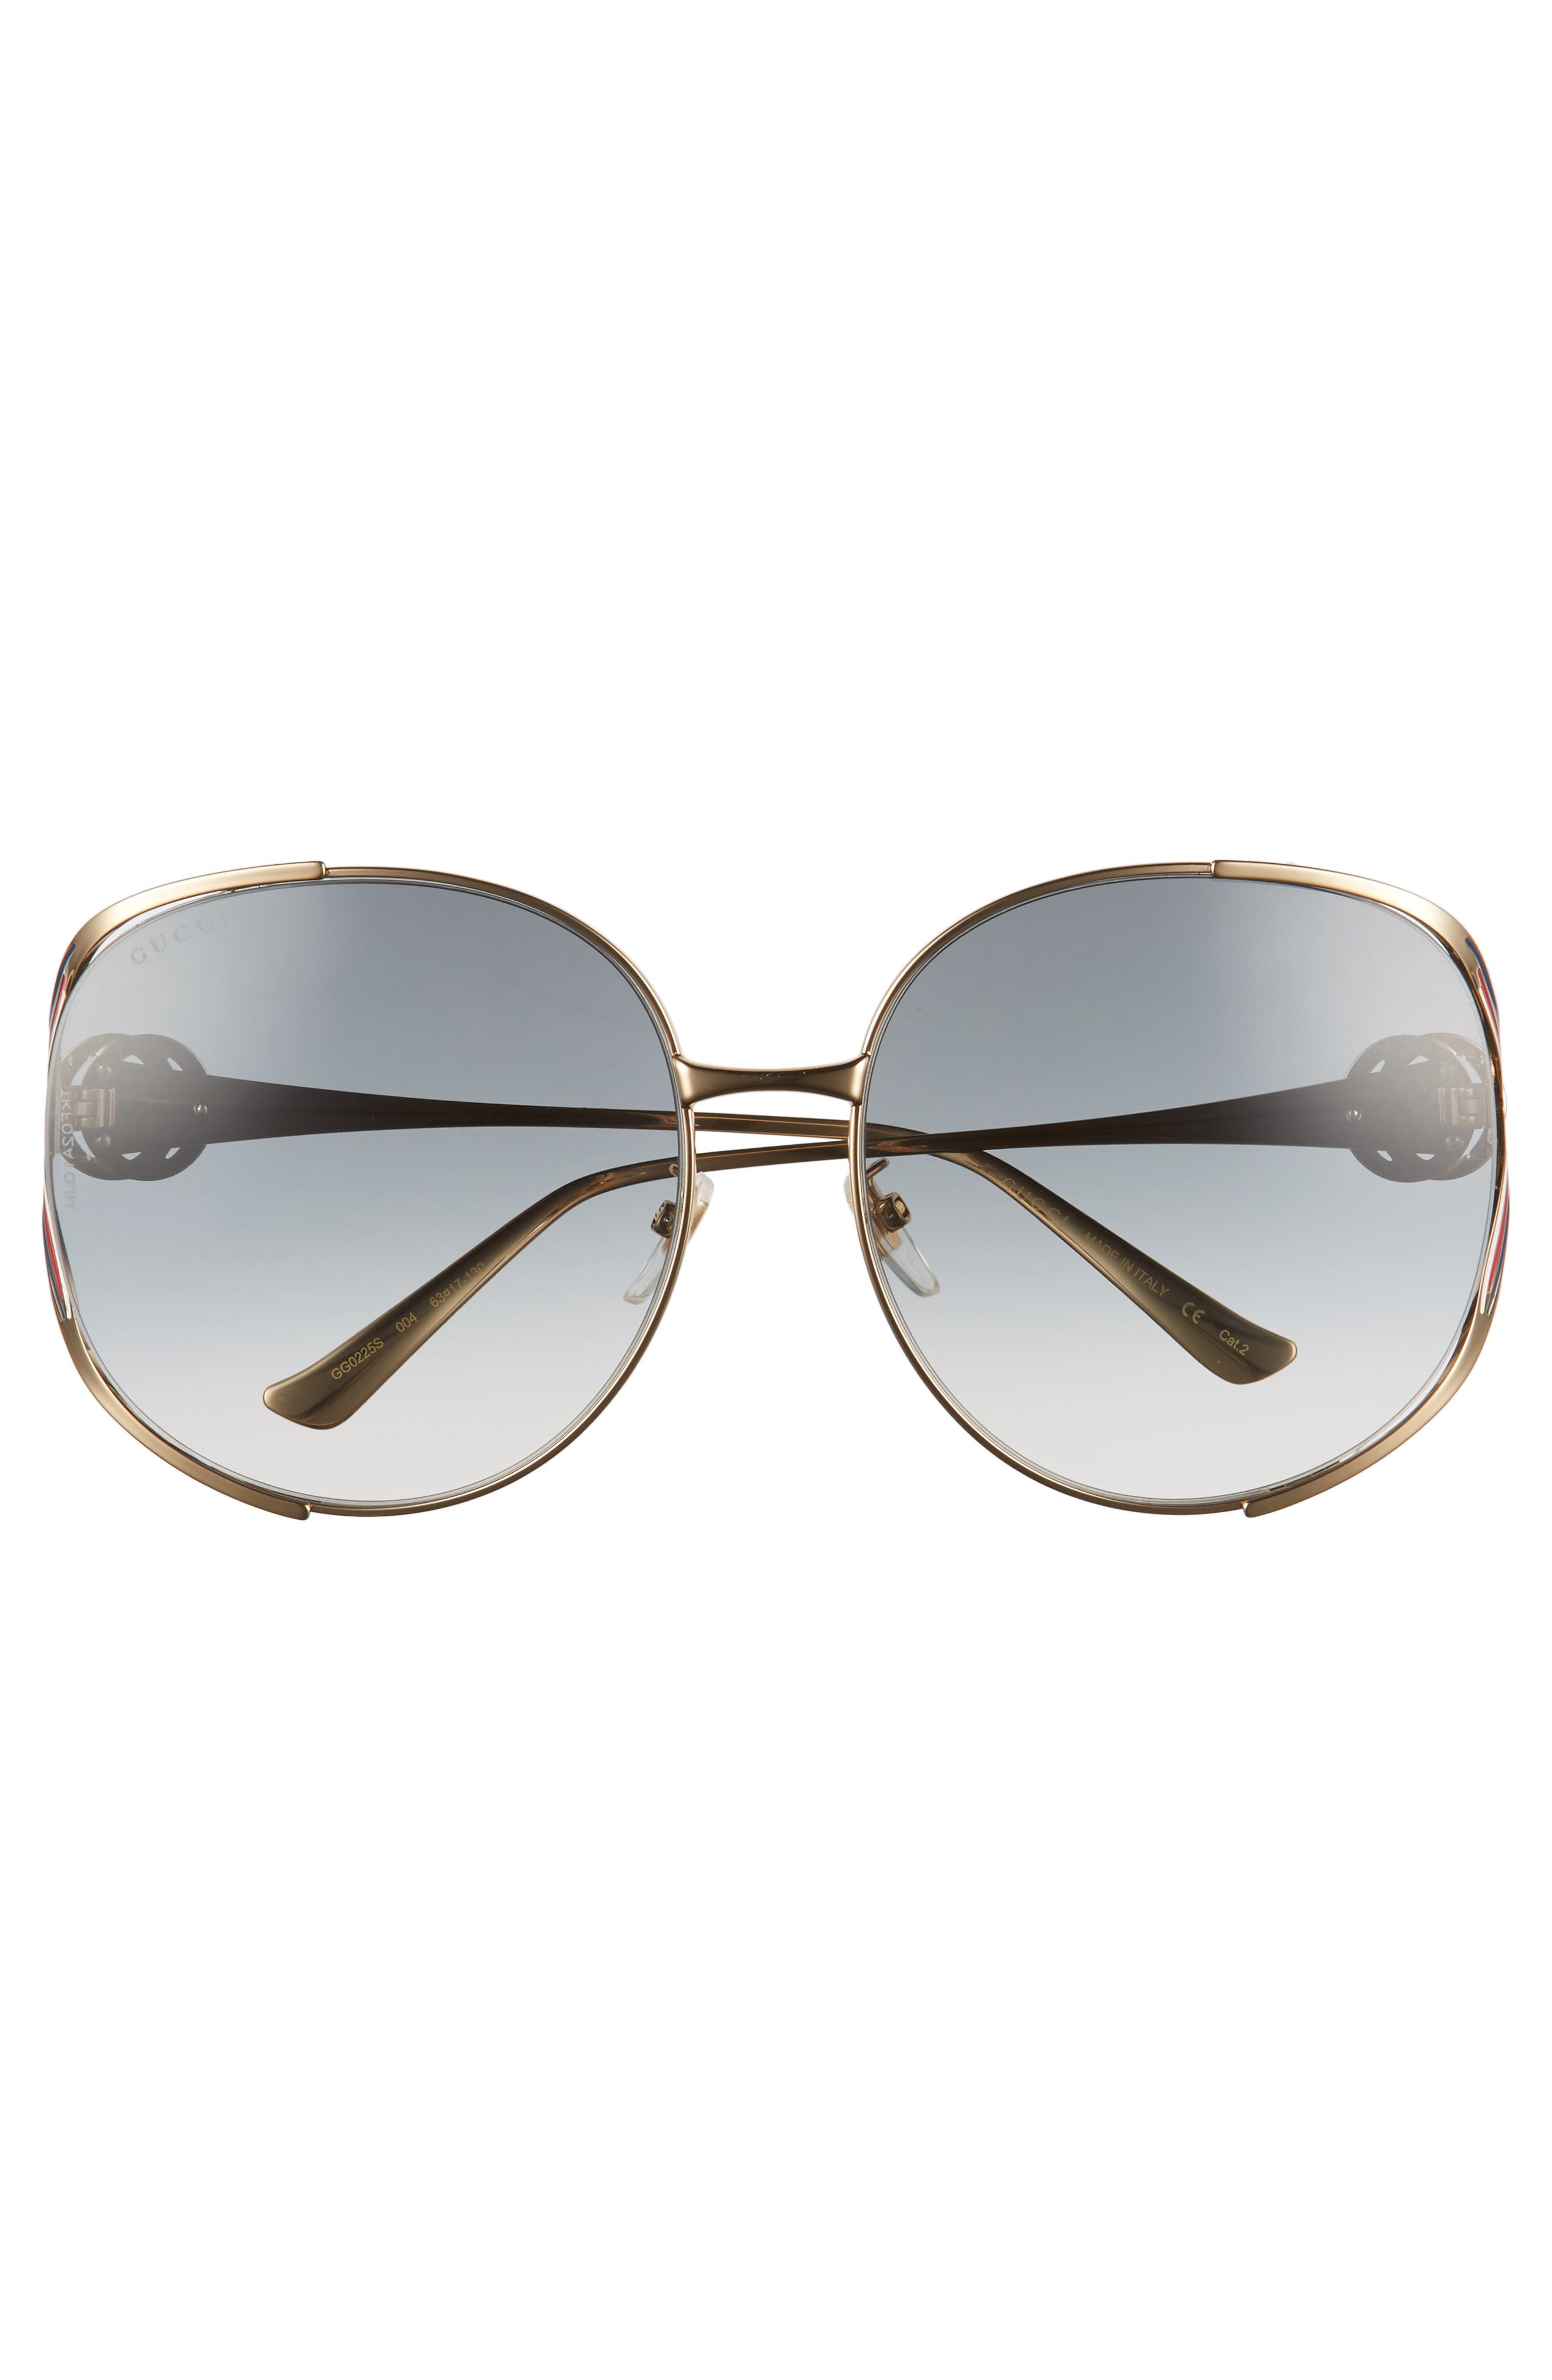 GUCCI, 63mm Open Temple Sunglasses, Alternate thumbnail 3, color, GOLD/ GREY